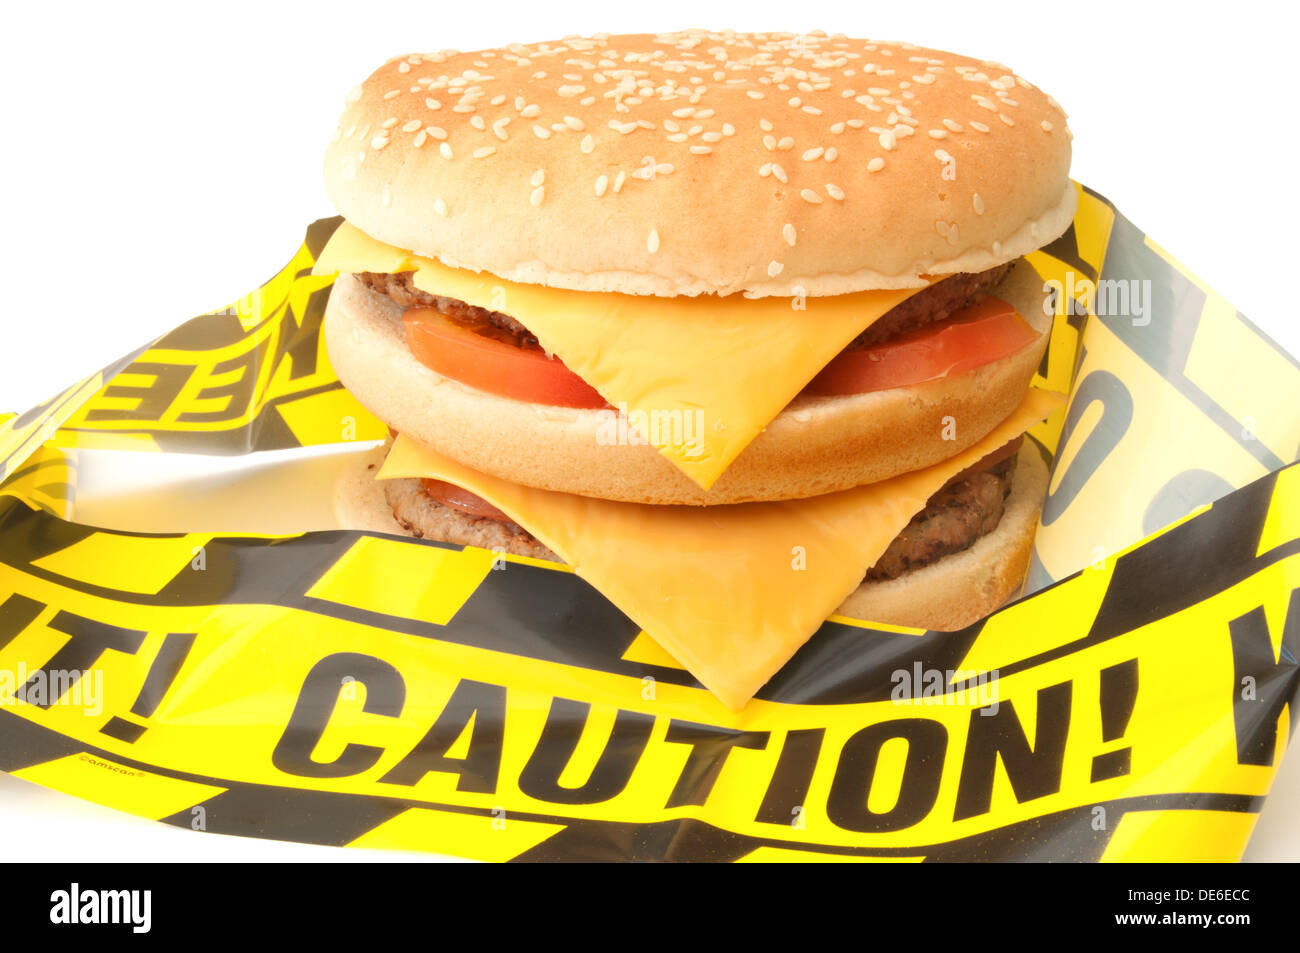 Unhealthy fast food - Stock Image